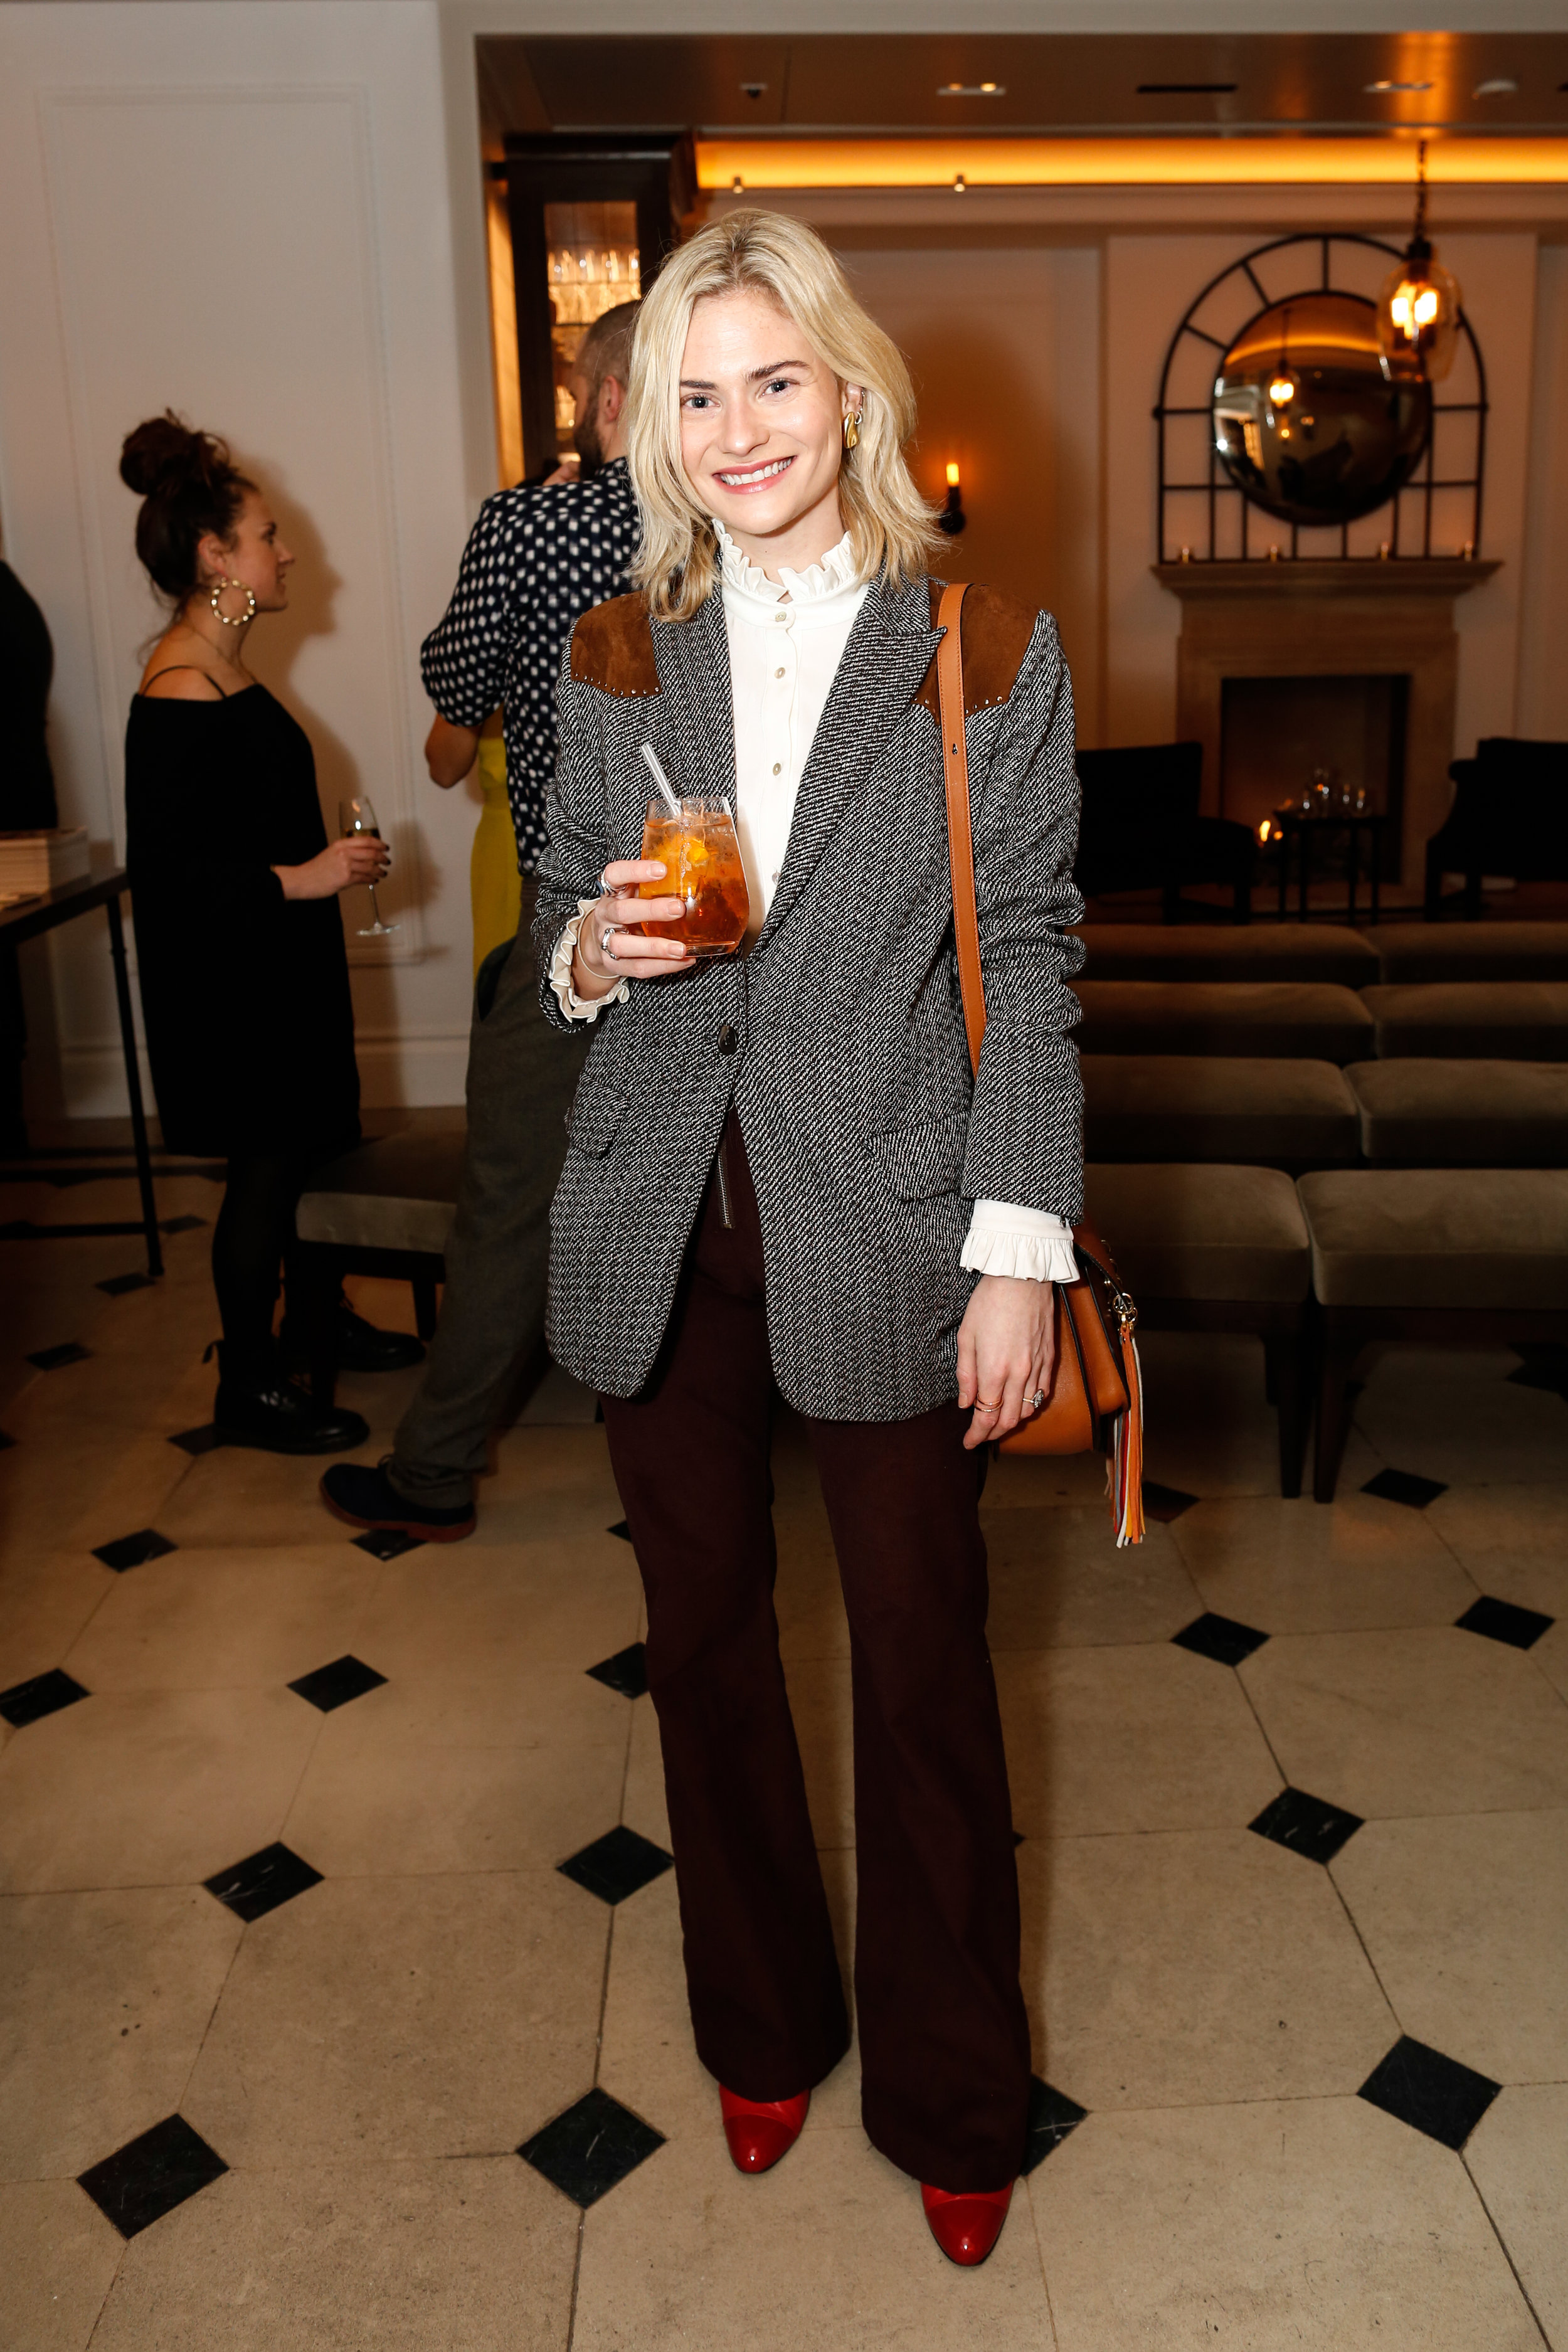 Pandora Sykes at the Burberry So It Goes event at Thomas's, London, 9th February 2016